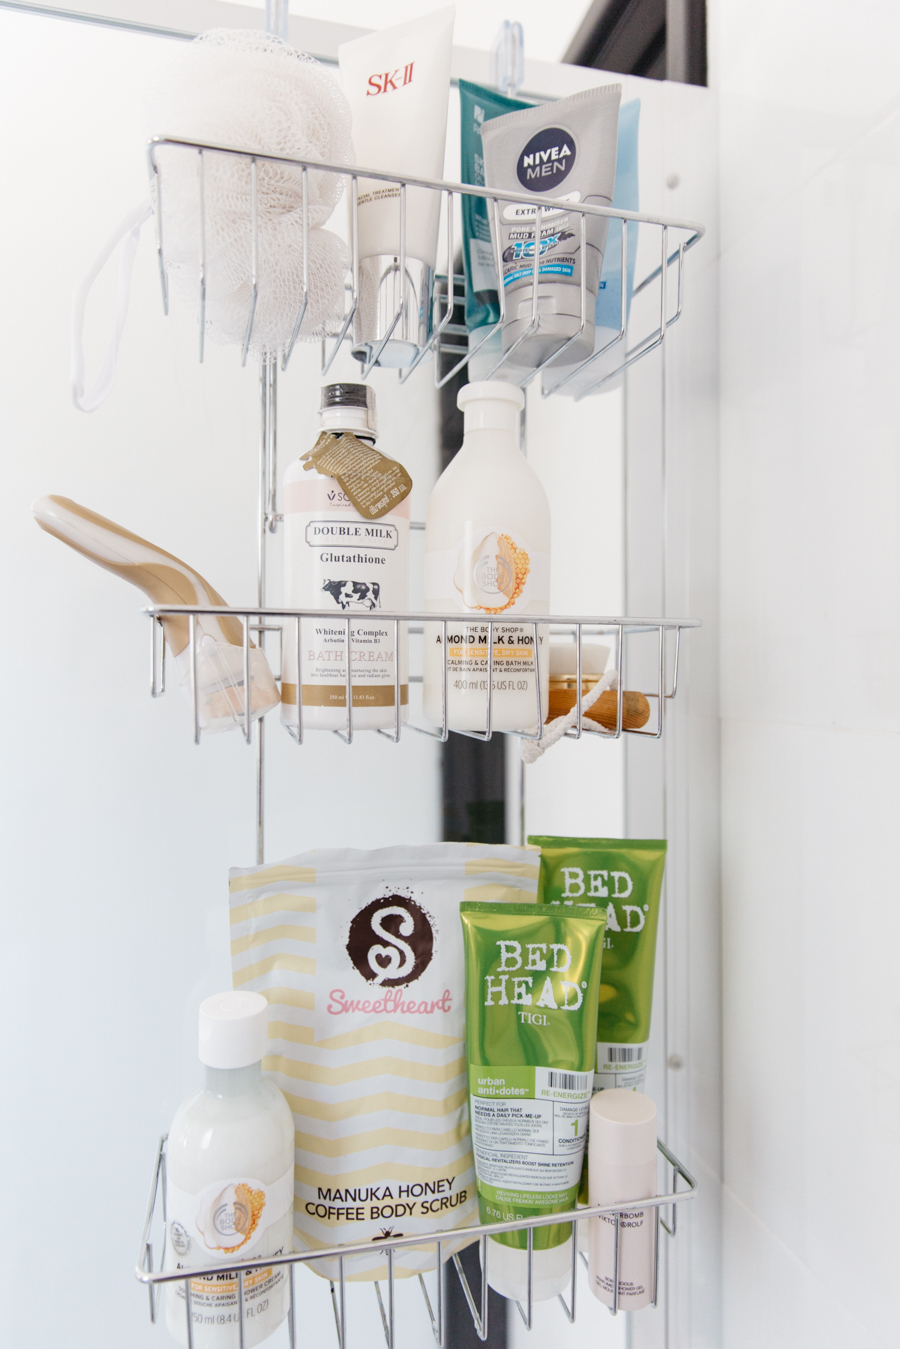 Shower caddy favourites. How to organise your shower.